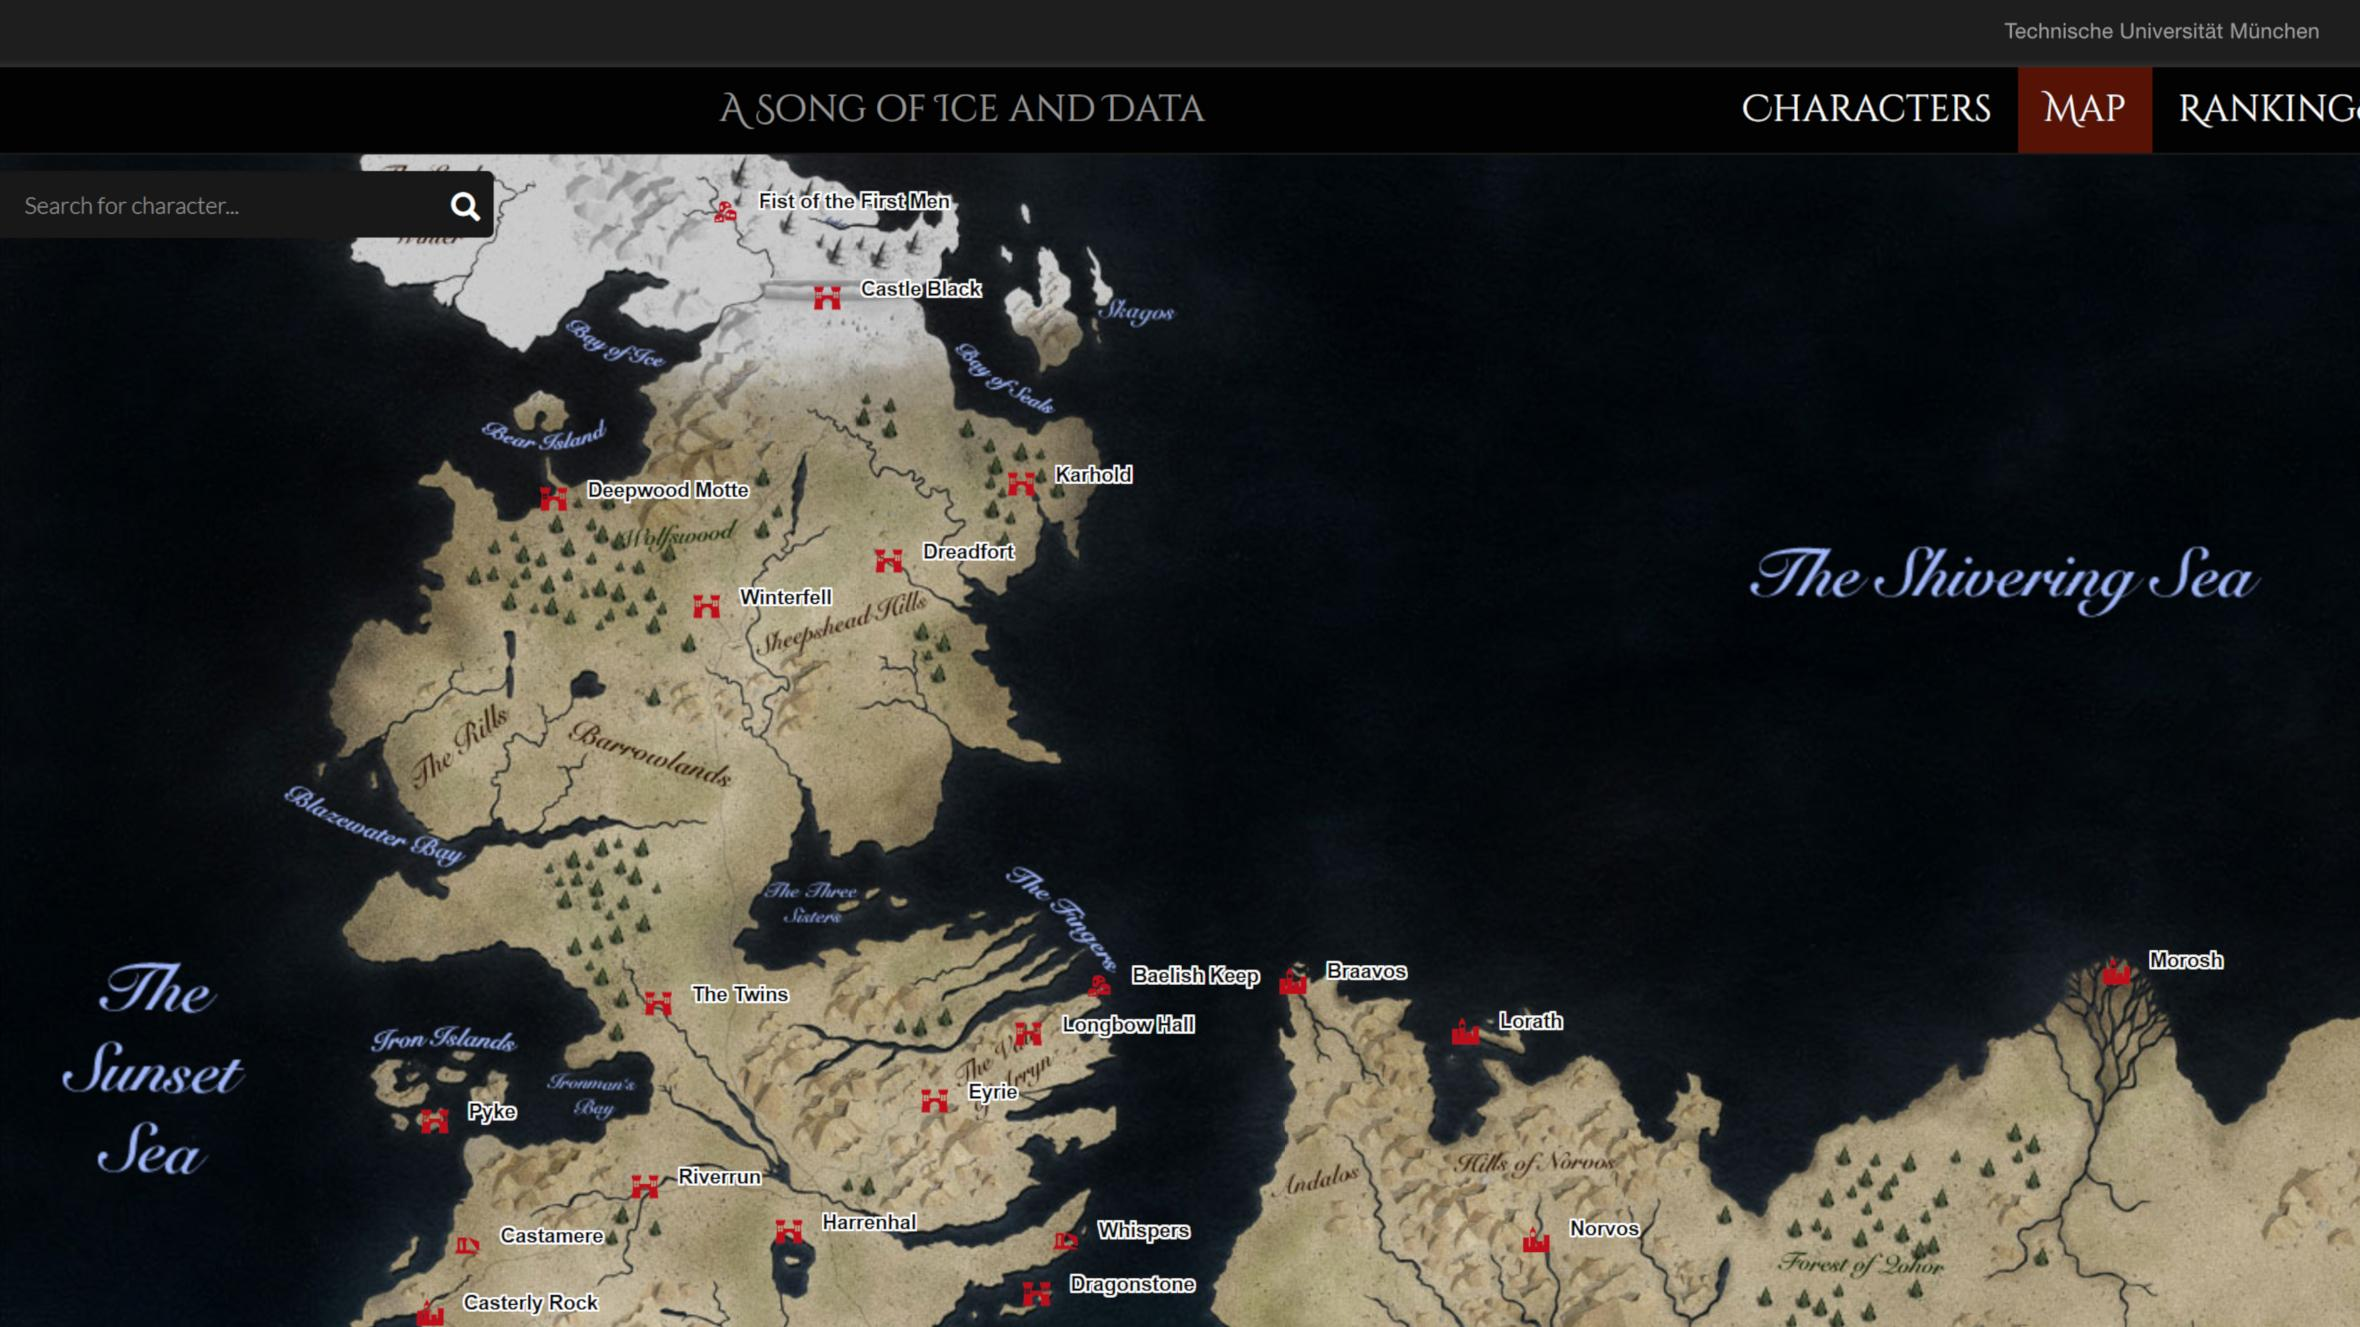 Who will win the Game of Thrones? - TUM Game Of Thrones Character Map on the girl with the dragon tattoo character map, george r. r. martin, a song of ice and fire, south park character map, fire and blood, a feast for crows, breaking bad character map, the winds of winter, king of thrones map, king of thorns map, assassin's creed character map, winter is coming, once upon a time character map, tales of dunk and egg, a clash of kings, character counts map, lord snow, walking dead map, a golden crown, mad men character map, a dance with dragons, game of thrones - season 2, a storm of swords, true detective character map, a feast for crows character map, lego batman 2 character map, dothraki language, fire and ice book map, the prince of winterfell, house targaryen, house of cards character map, criminal minds character map, alfie owen-allen, gameof thrones map, game of thrones - season 1,